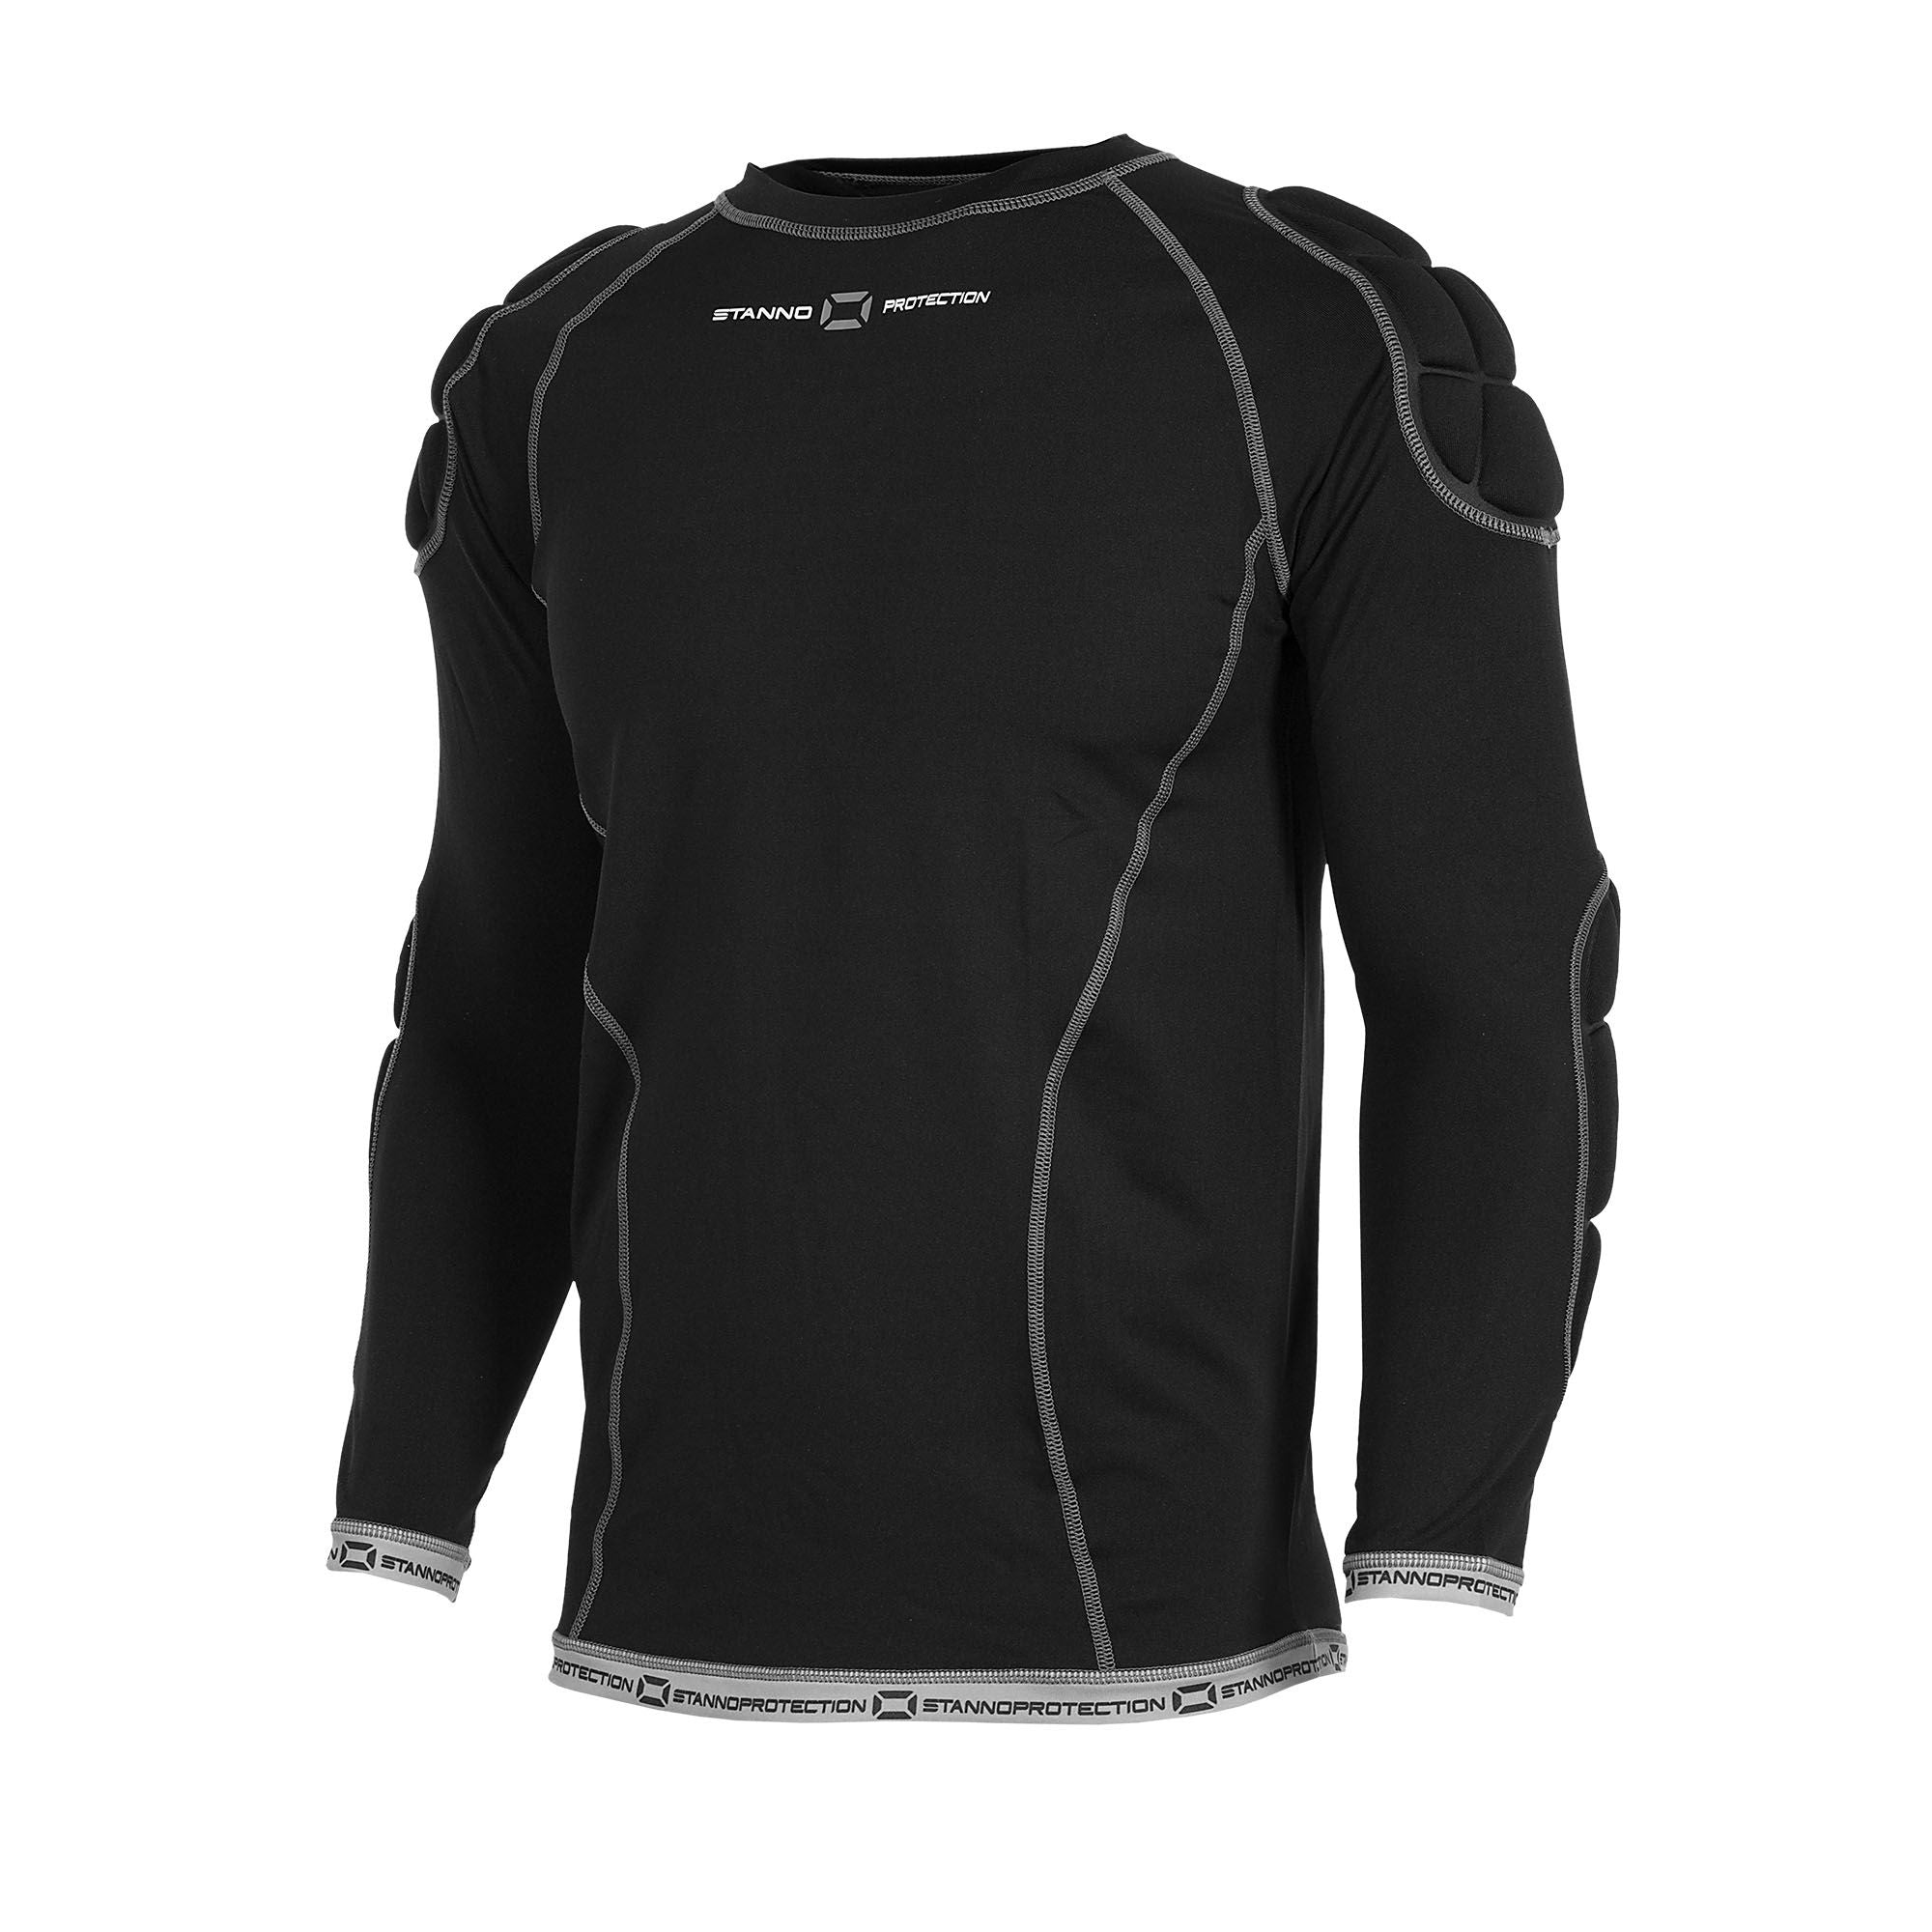 Stanno Goalkeeper protection shirt with padding on arms and shoulders